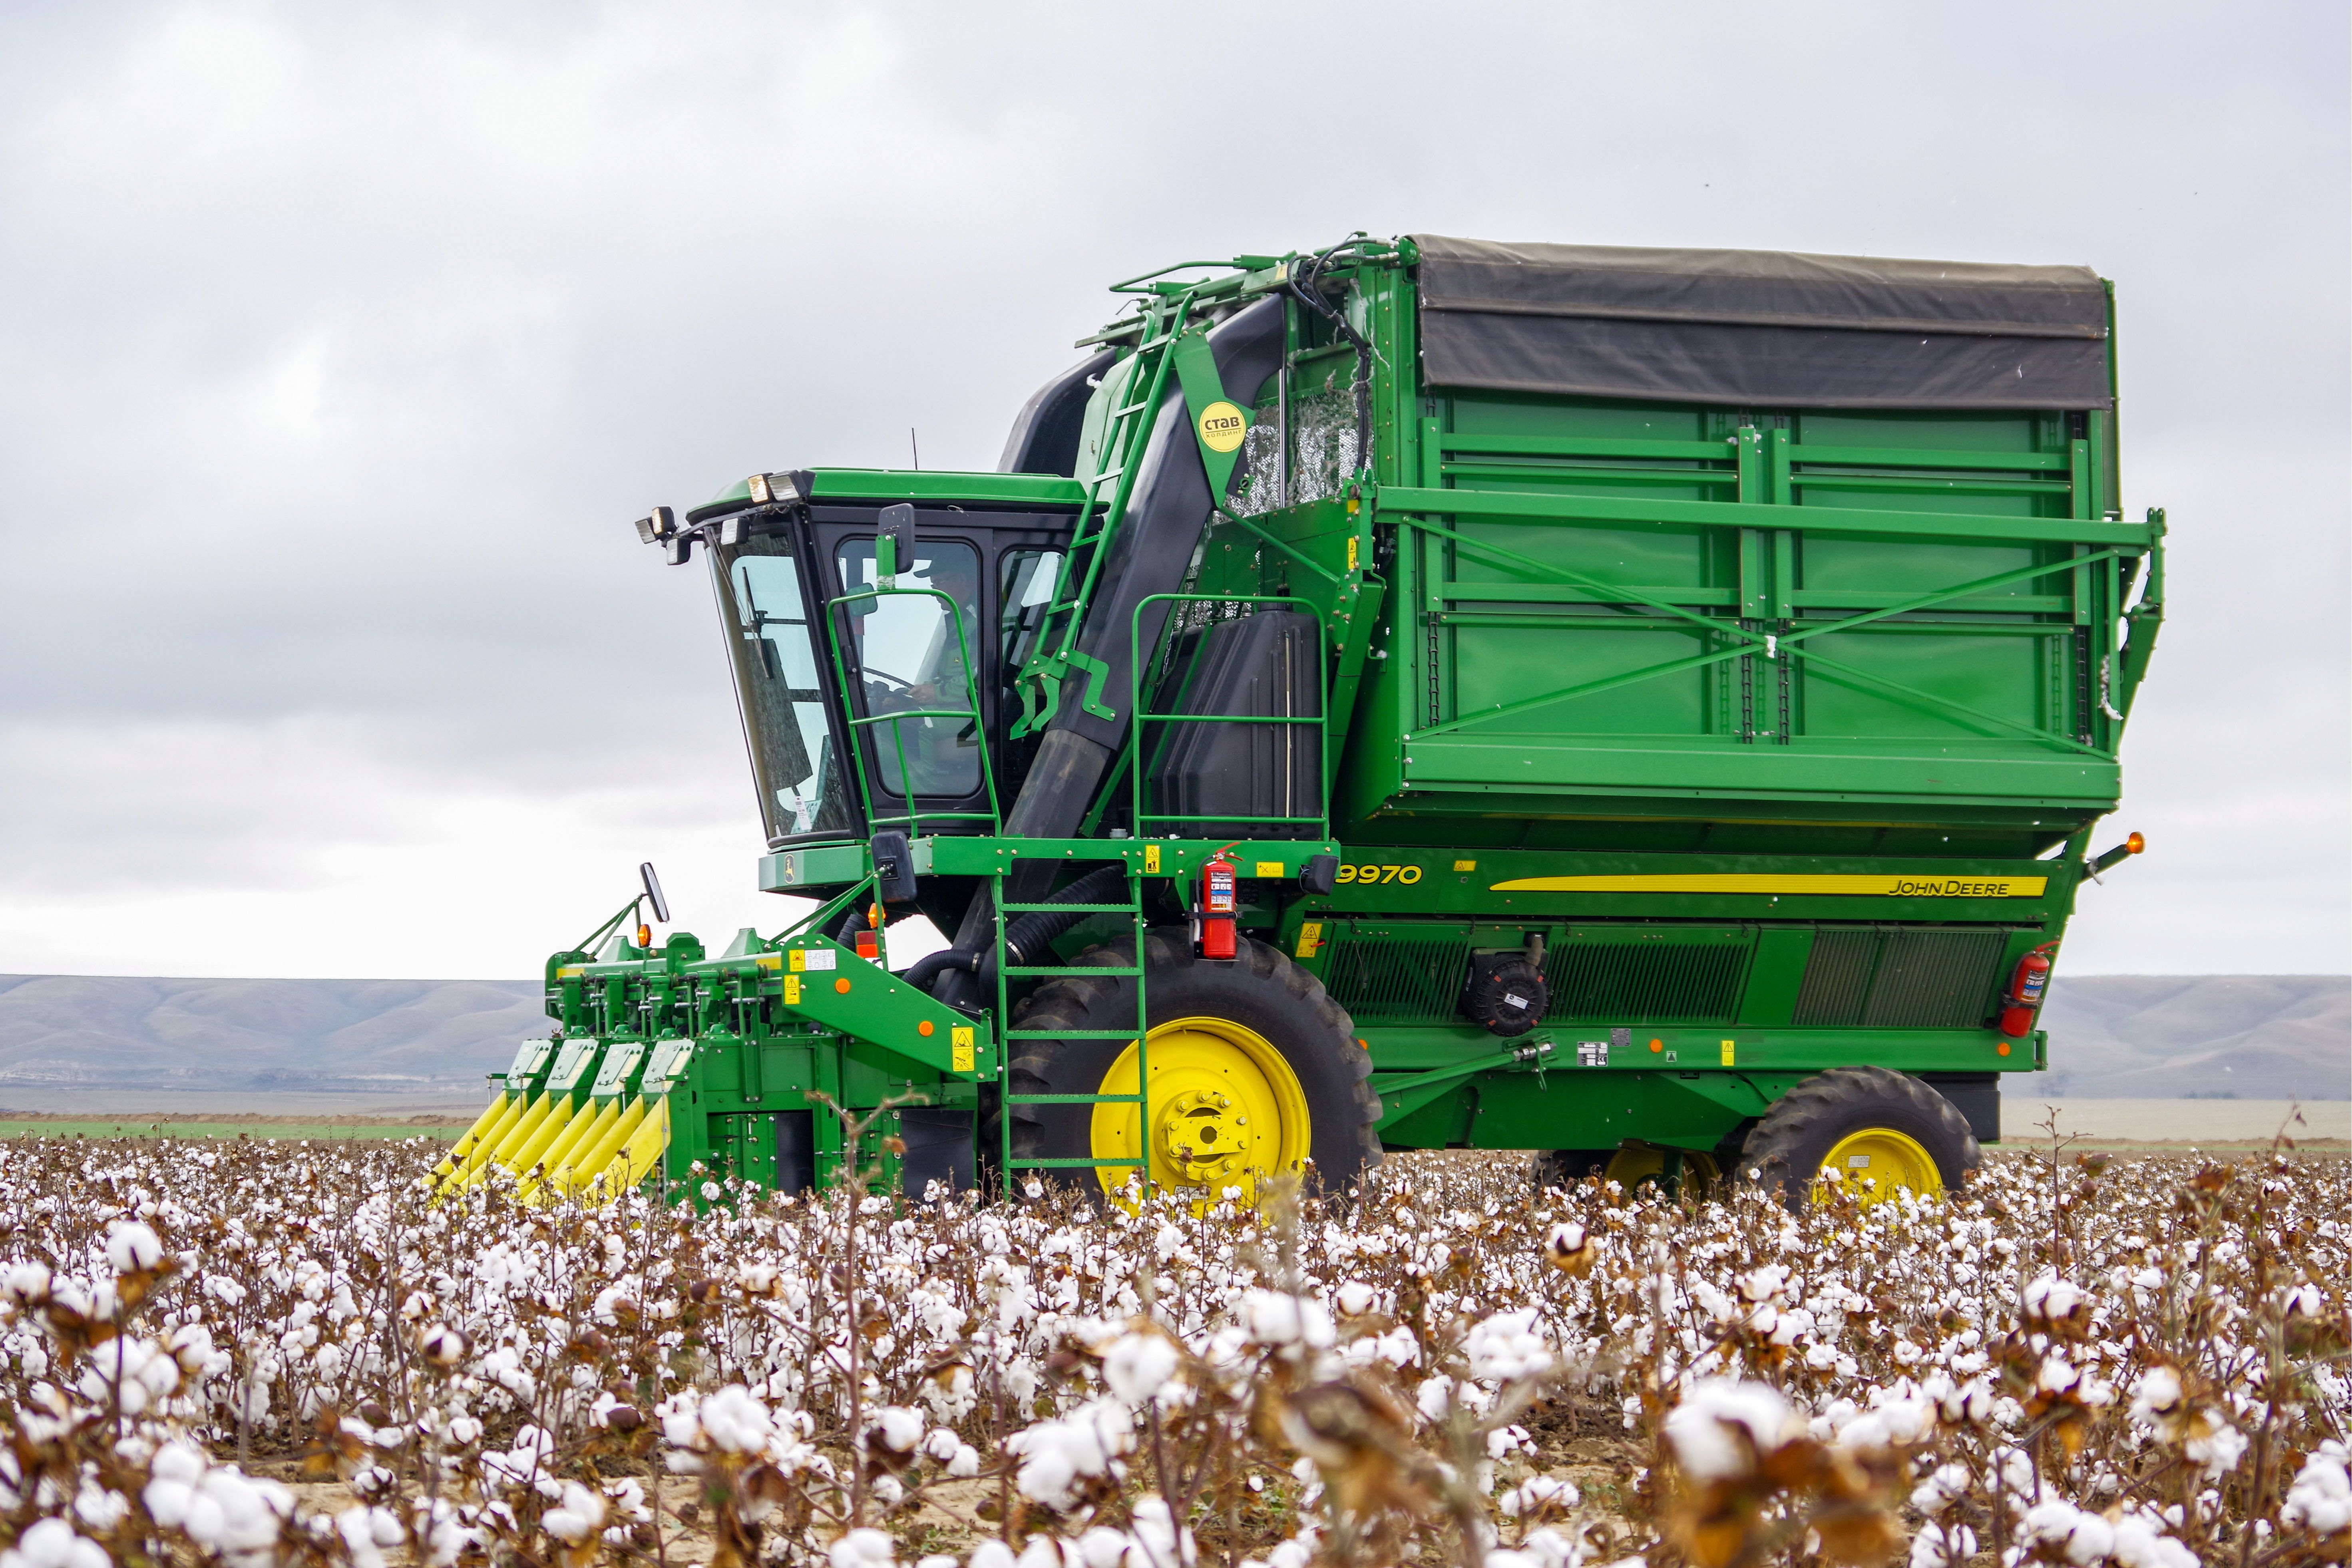 John Deere expects U.S.-China trade war to hurt its bottom line in 2020 - Axios